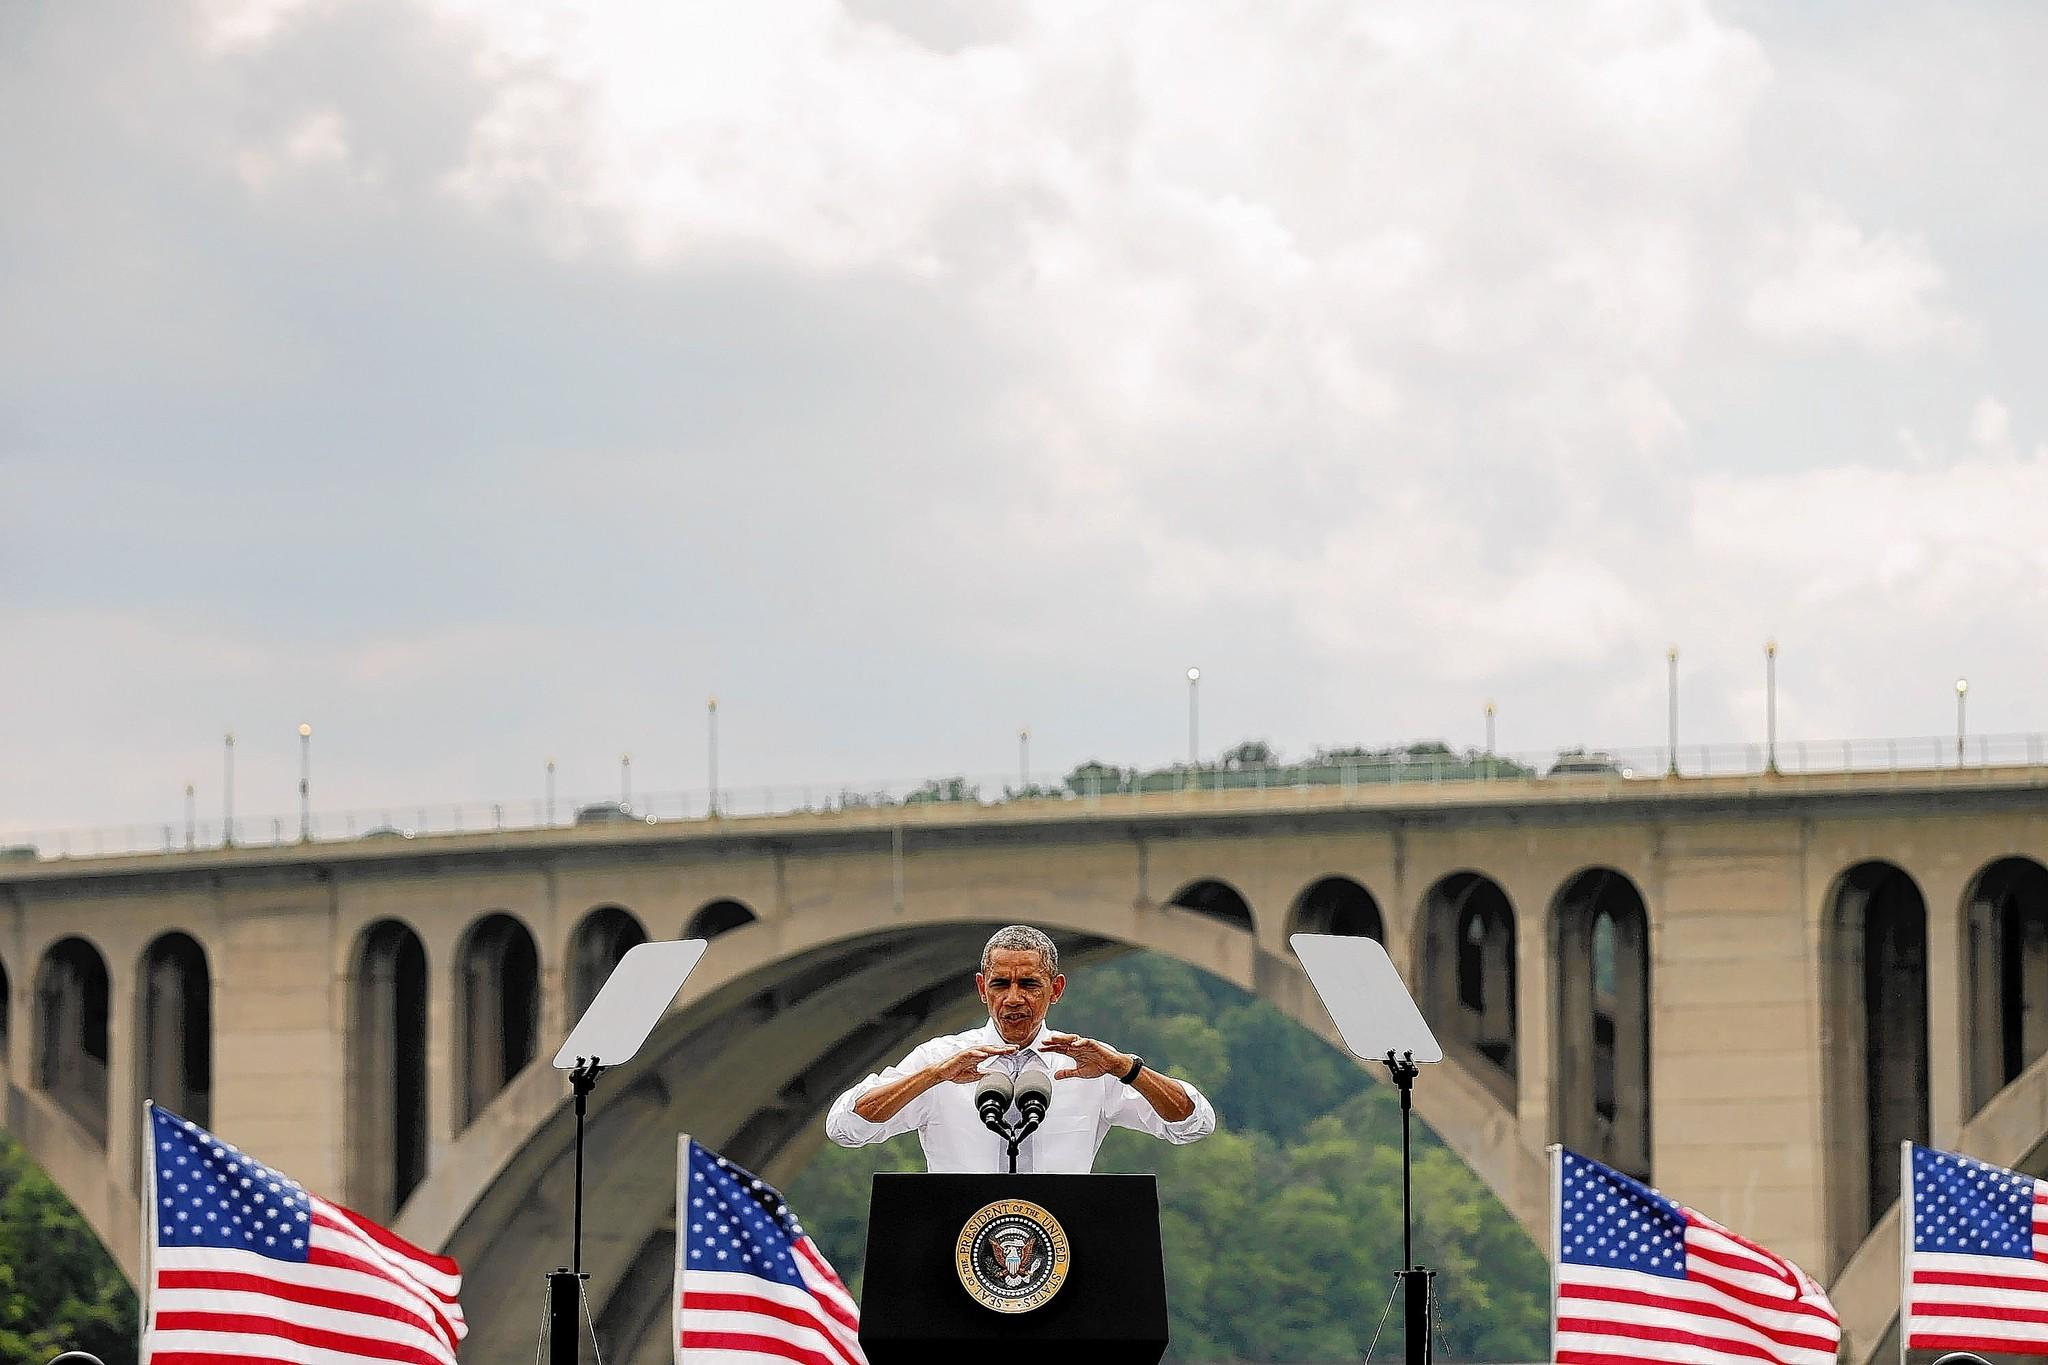 President Barack Obama delivers remarks July 1 in front of the Key Bridge along the Georgetown Waterfront Park in Washington, D.C. Obama called on Congress to close tax loopholes and use the money to pay for infrastructure projects. The Key Bridge will be repaired using the Highway Trust Fund, which will expire at the end of the summer if Congress does not find a new way to pay for it.